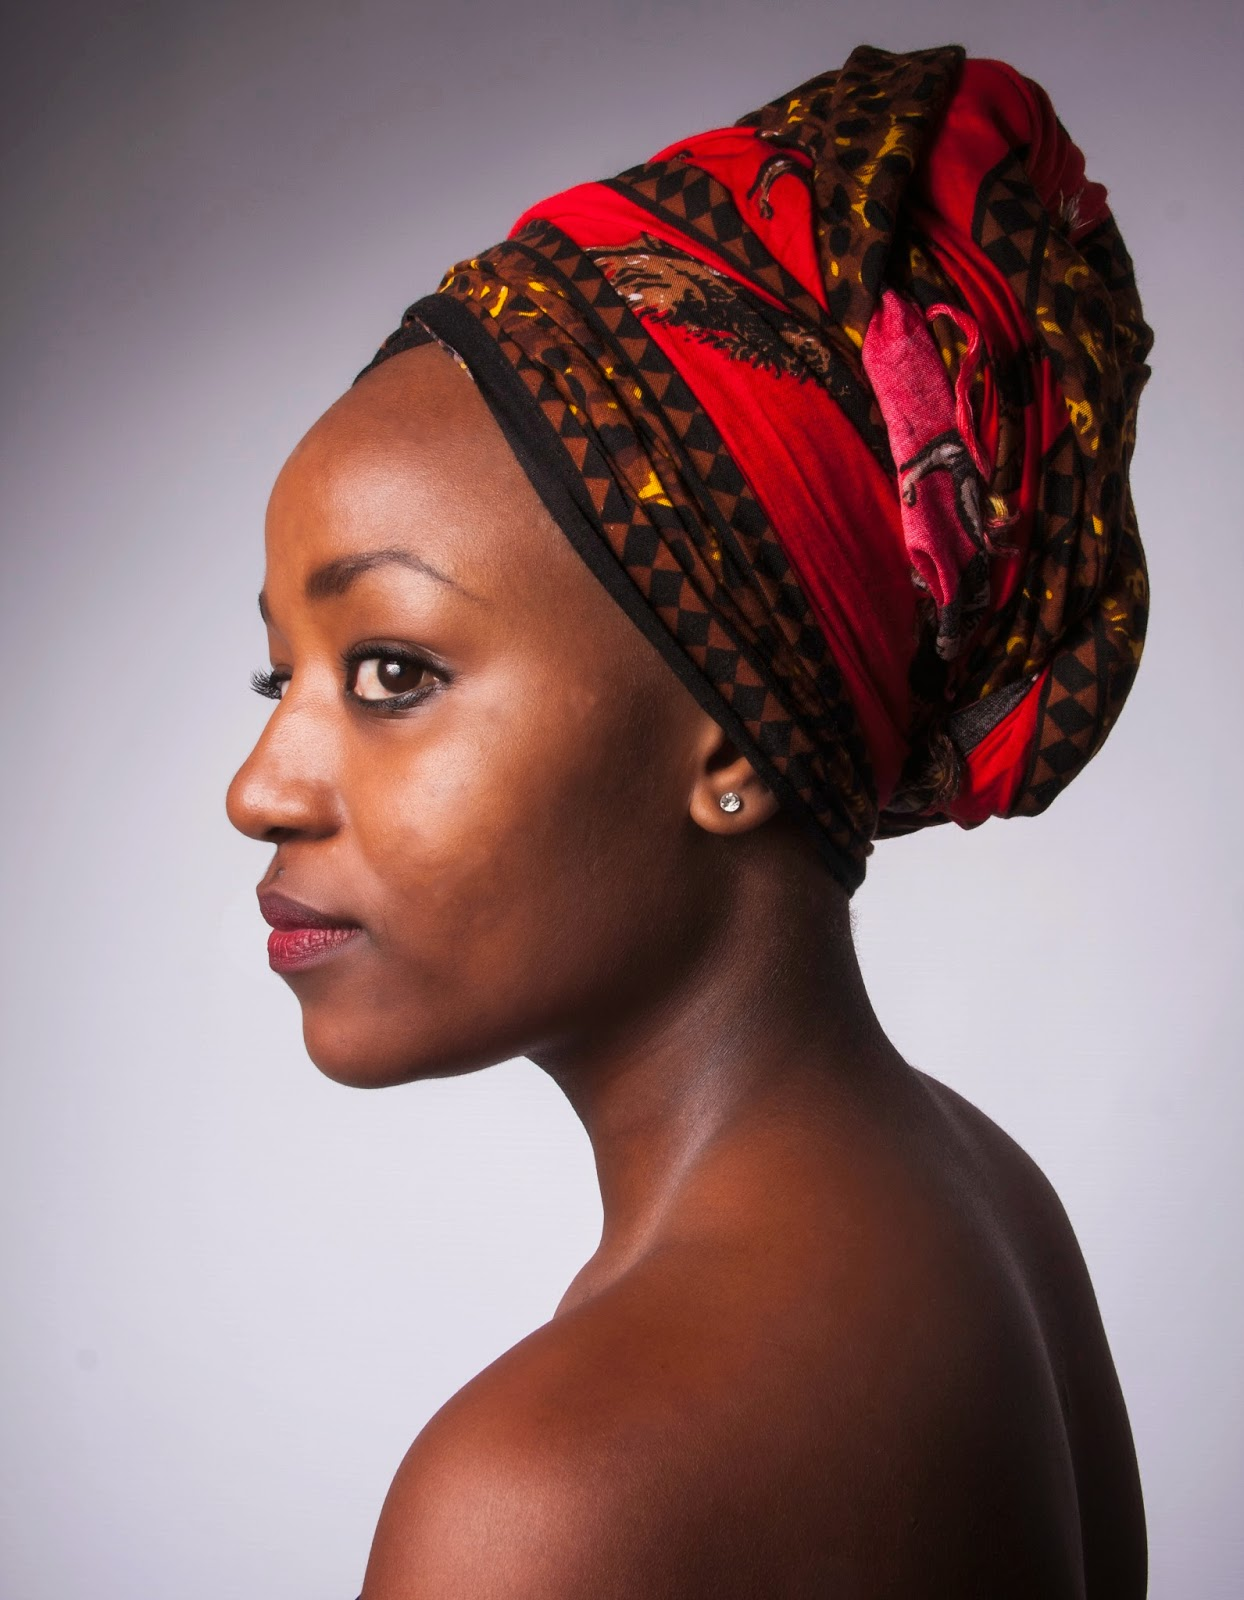 These Are The Top 10 Feminist Countries In Africa